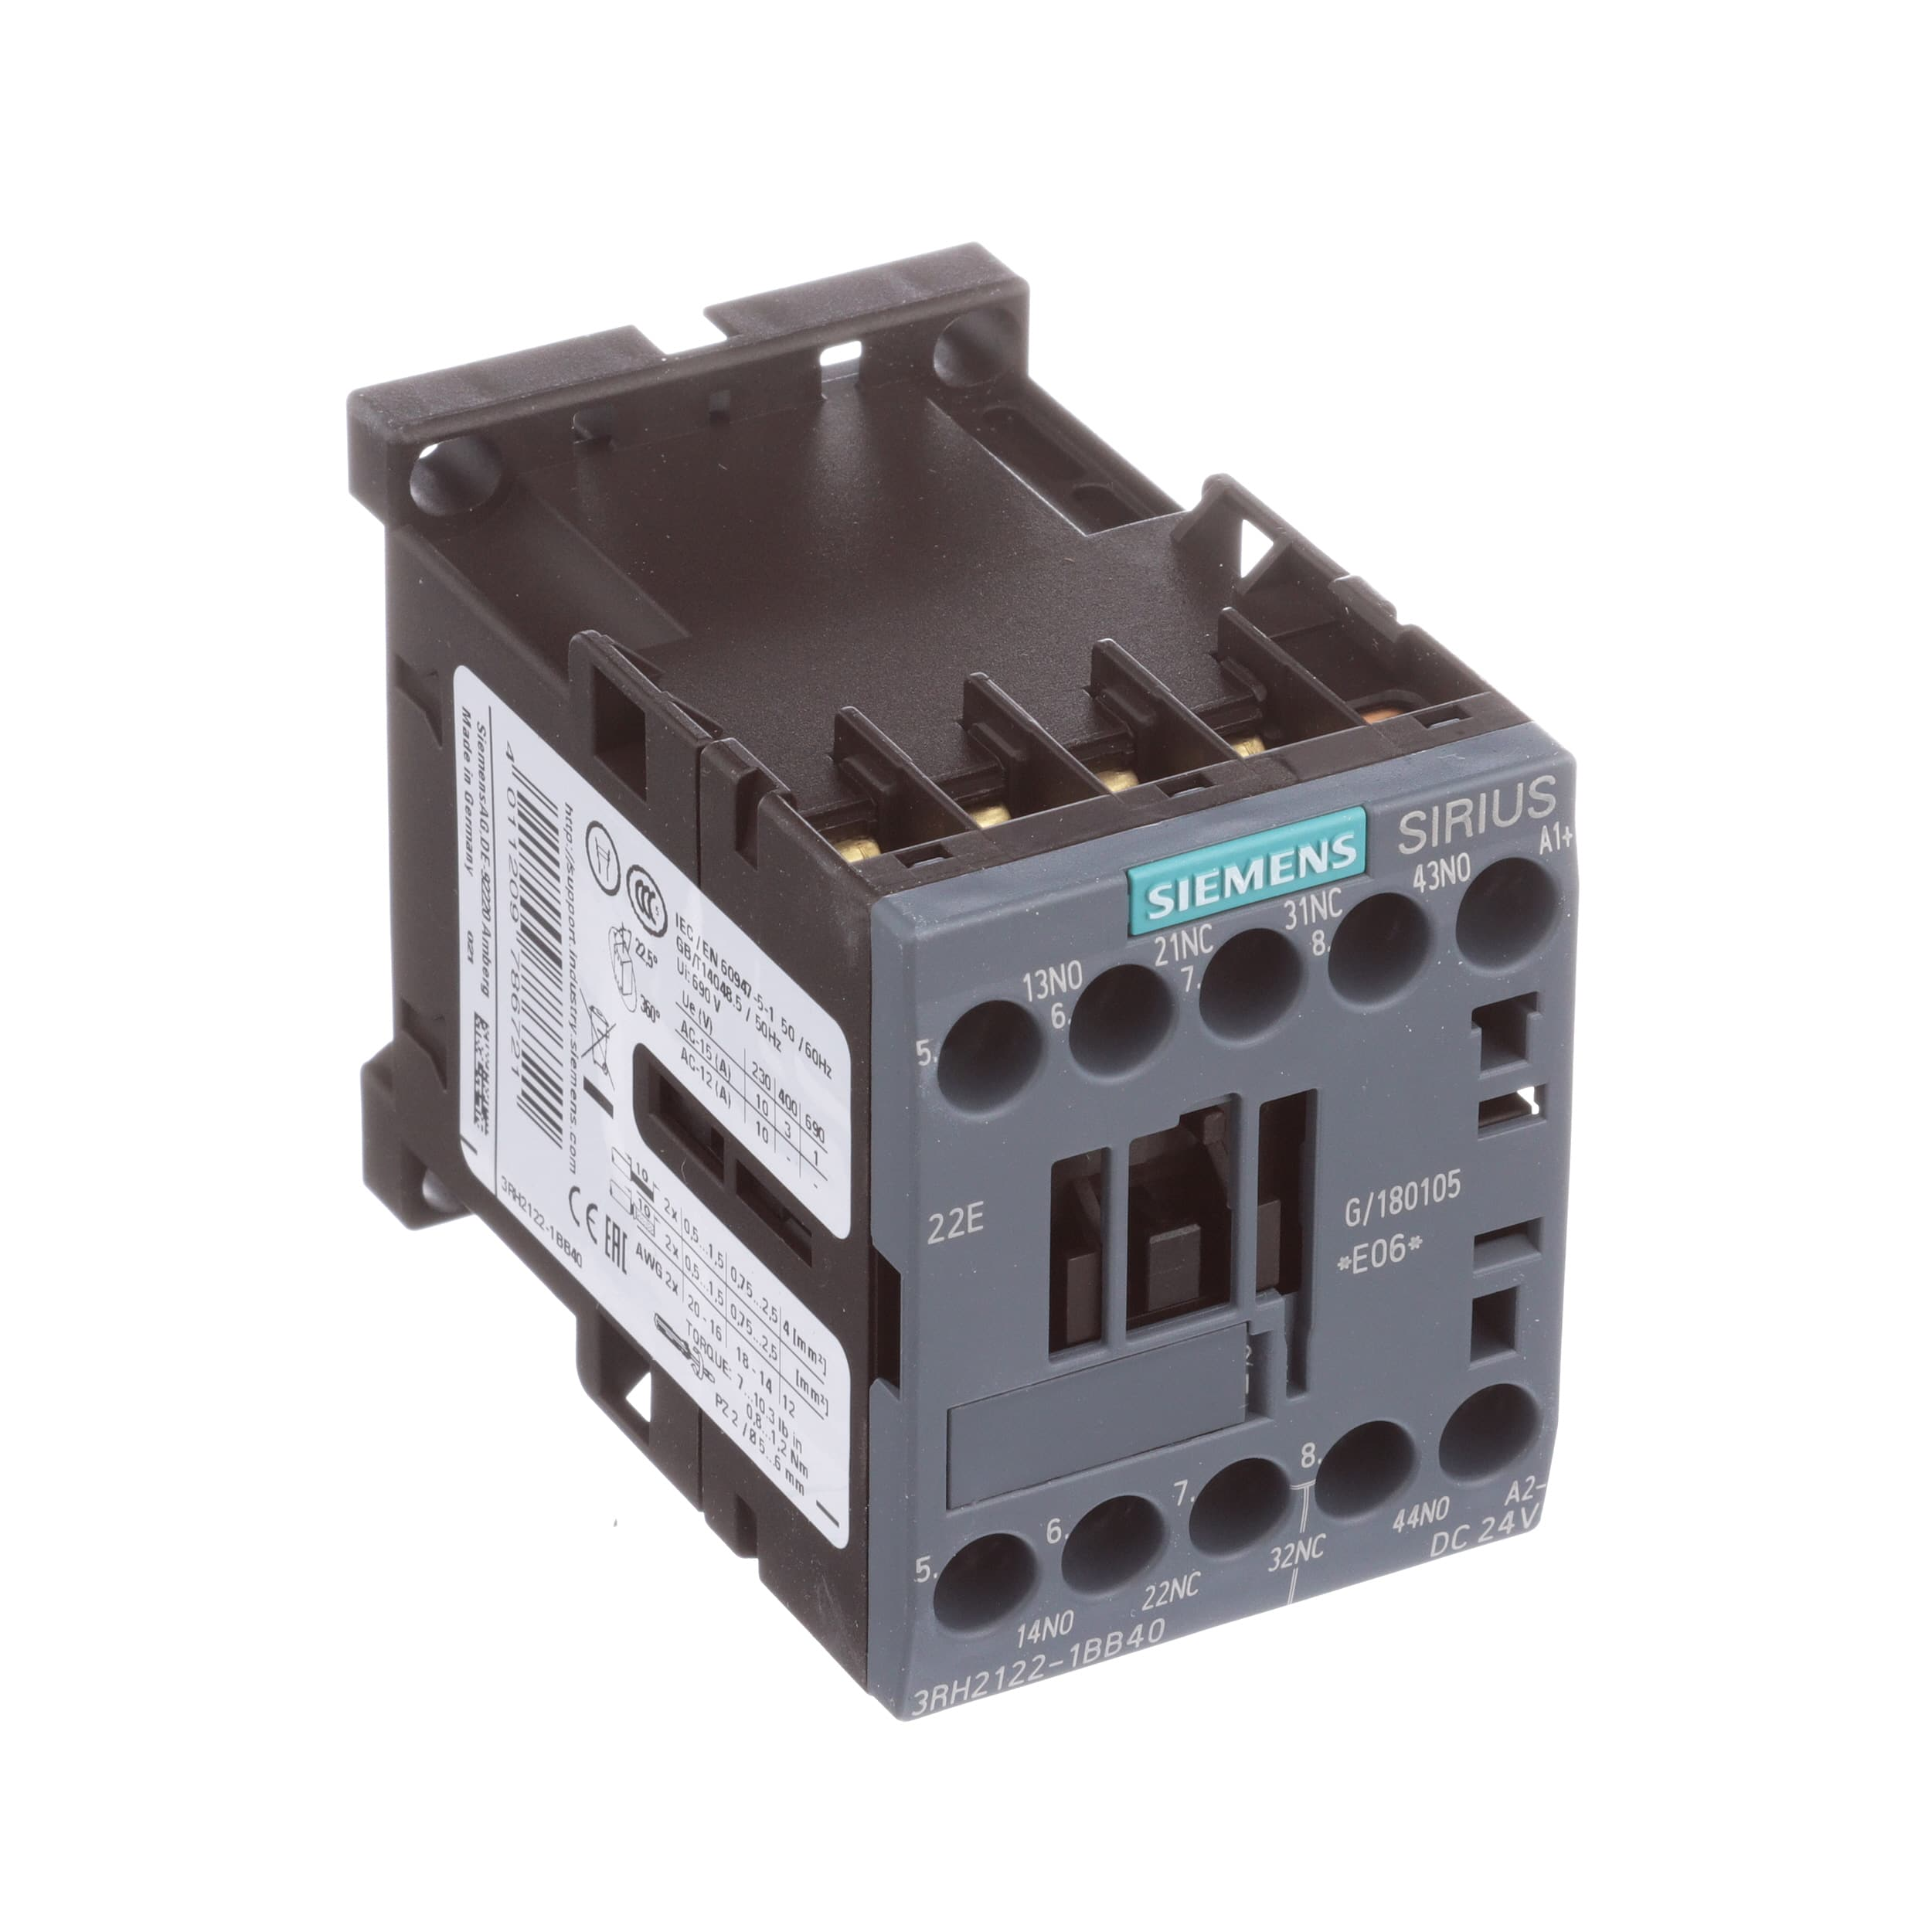 Siemens - 3RH21221BB40 - CONTACTOR RELAY 2NO+2NC DC 24V ... on auxiliary fuel tank, auxiliary battery, auxiliary locks, auxiliary radiator, auxiliary horn, auxiliary contactor, auxiliary fuse box, auxiliary fuel pump,